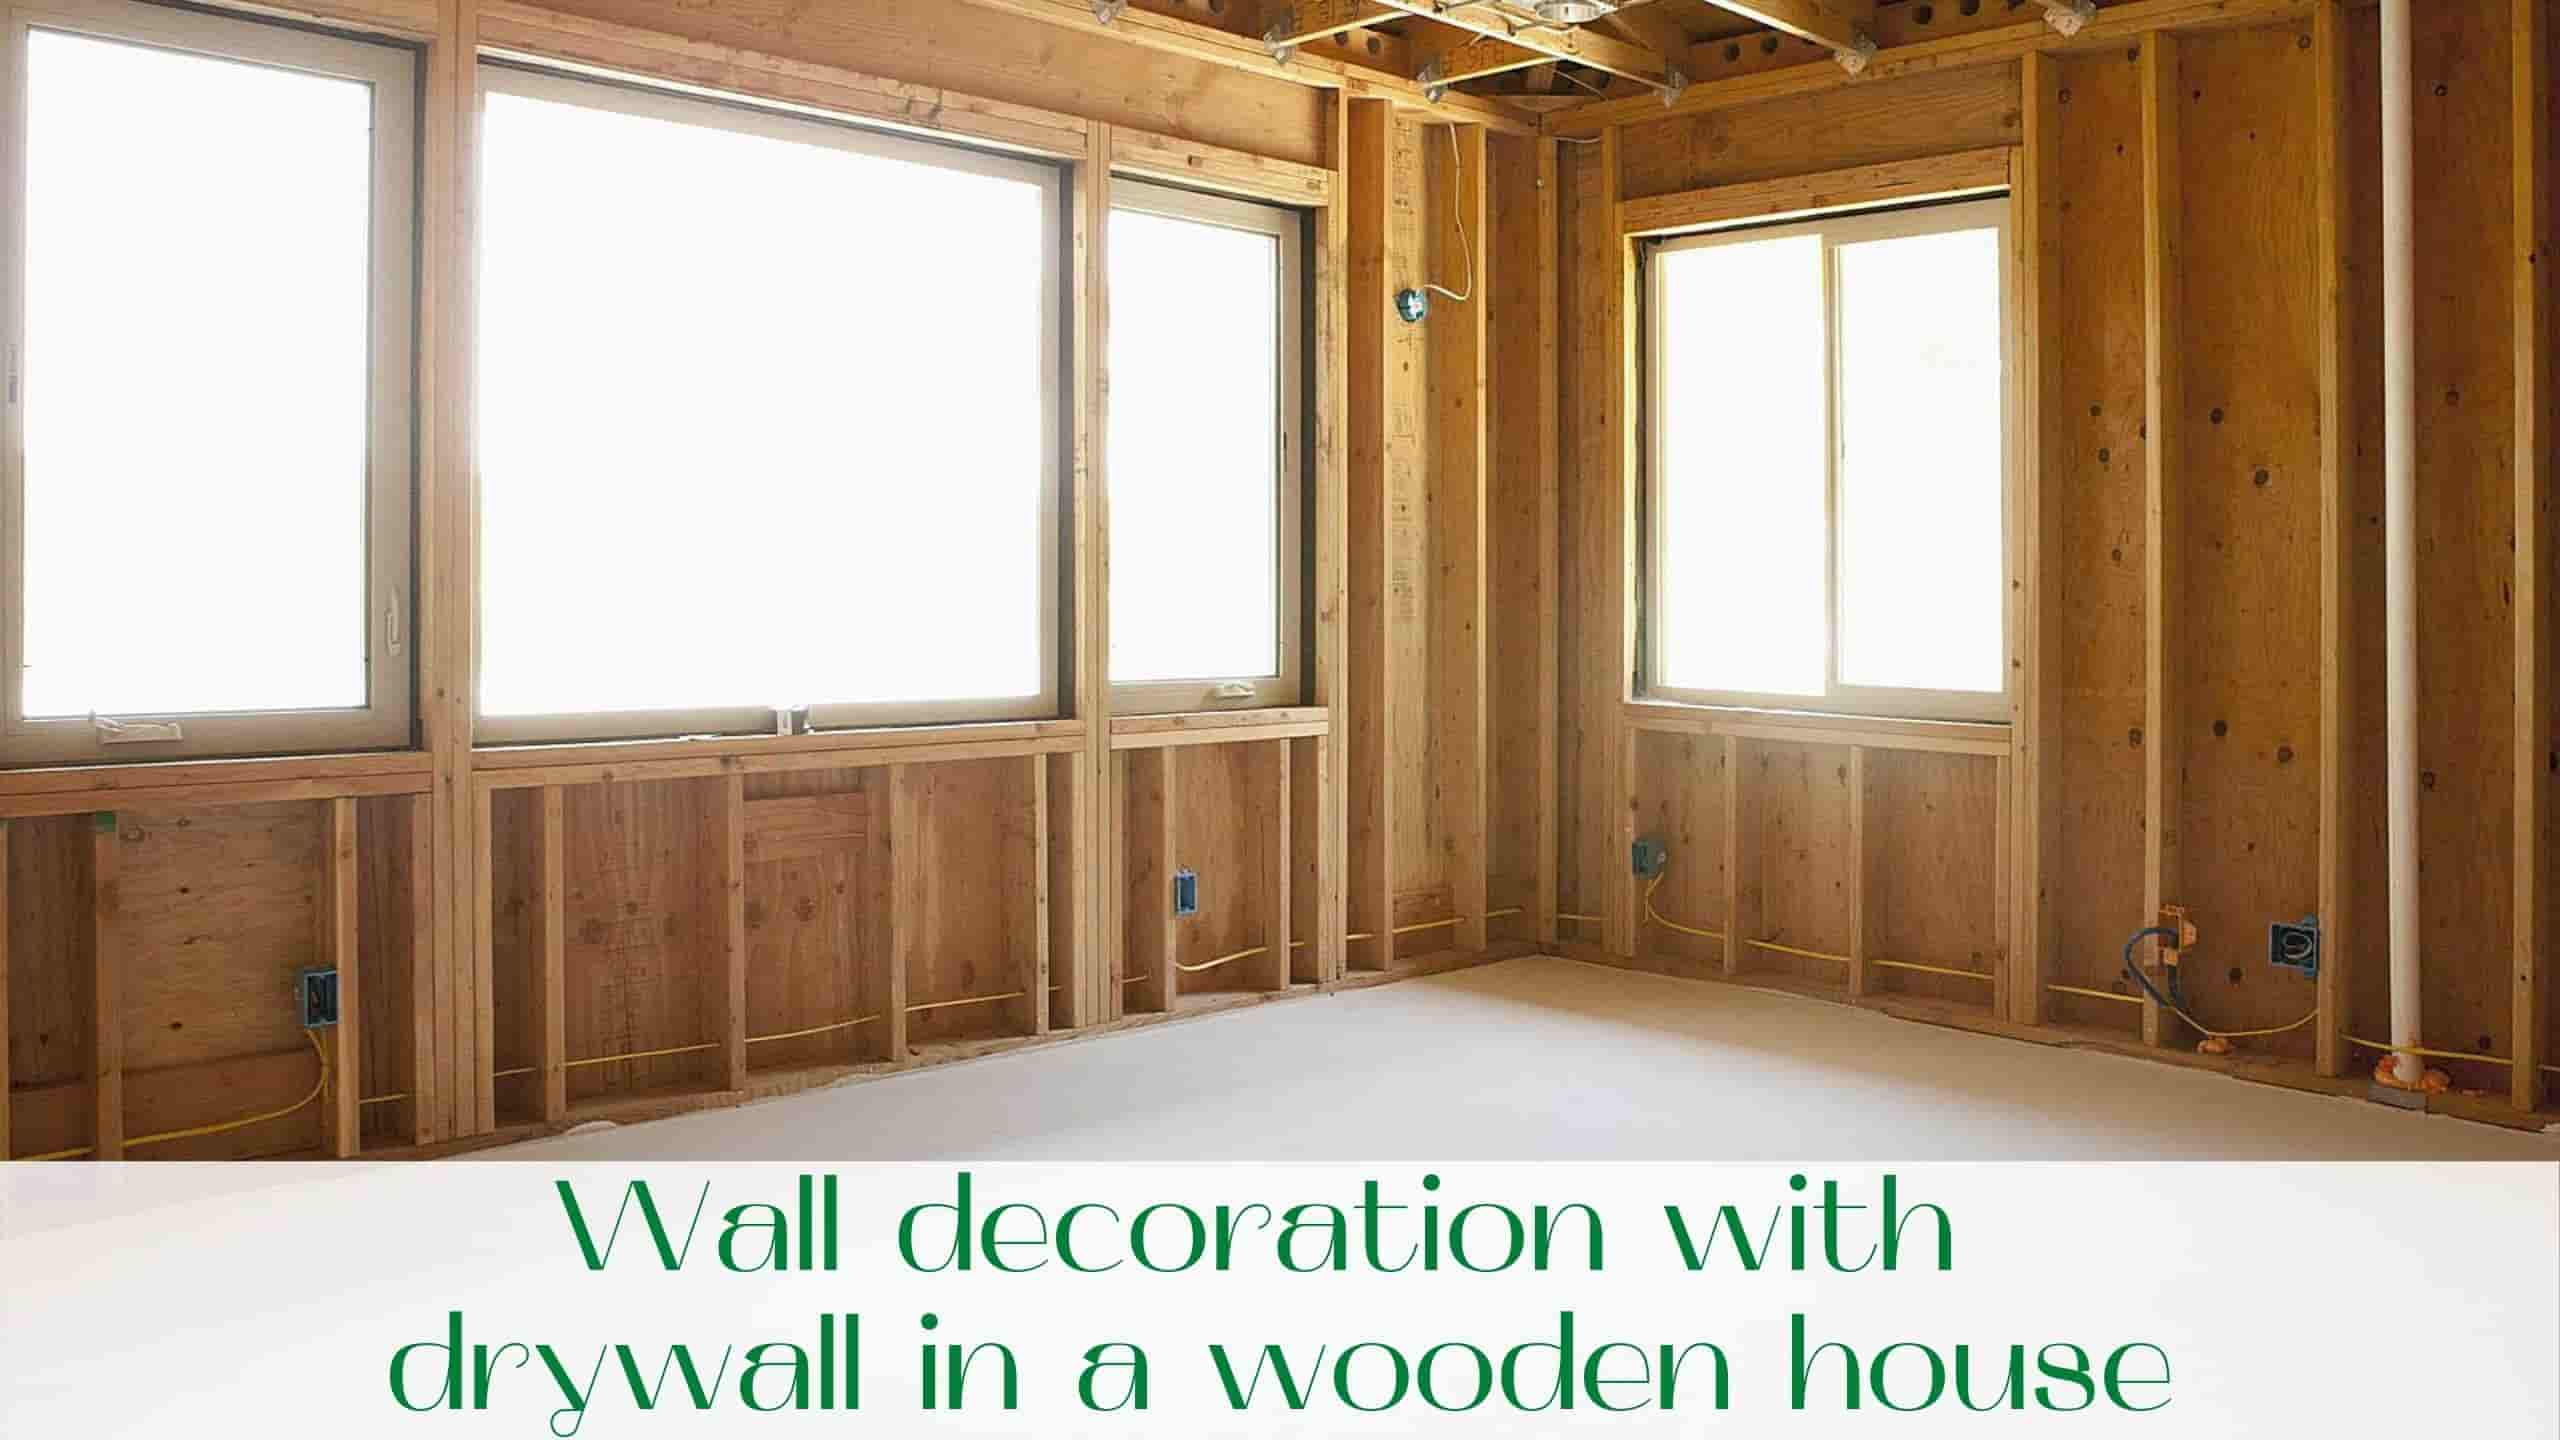 image-Wall-decoration-with-drywall-in-a-wooden-house